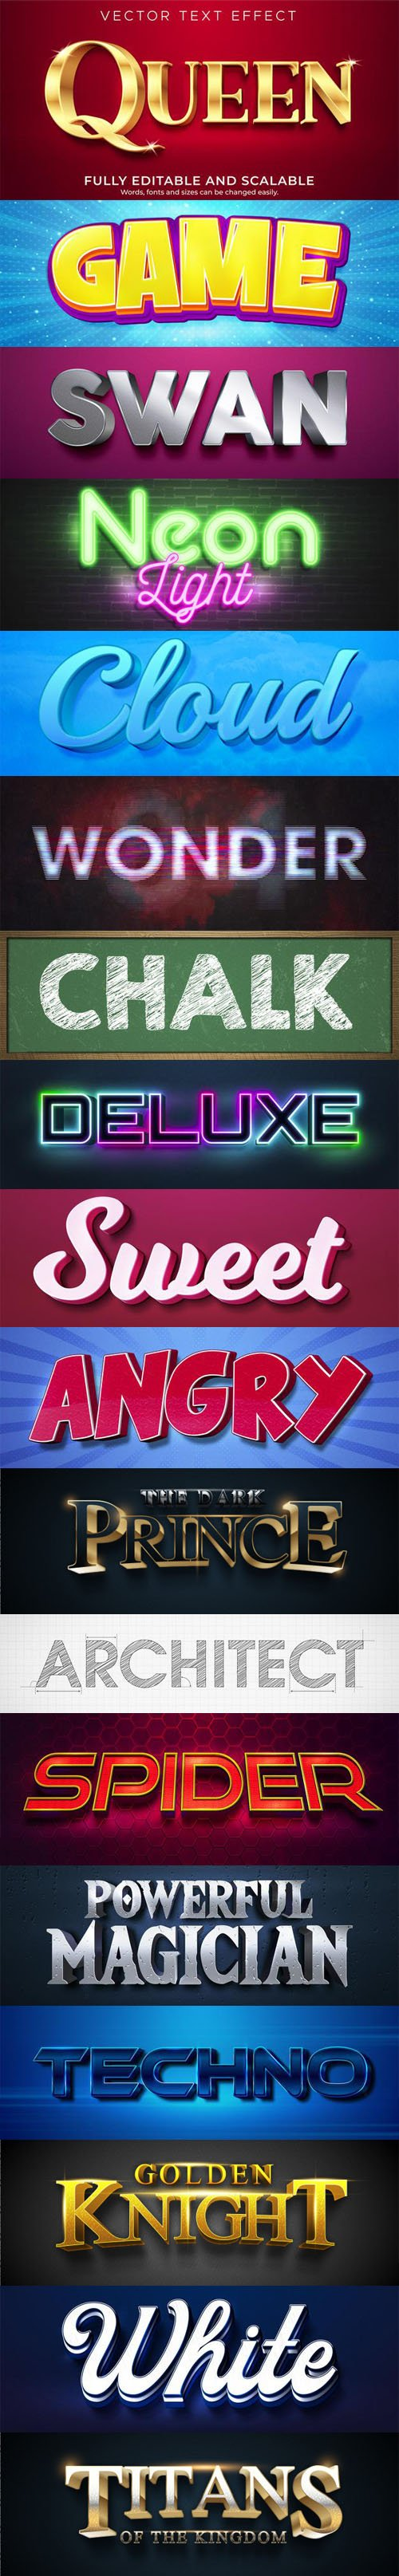 18 Text Effect Vector Templates - Text Styles Collection